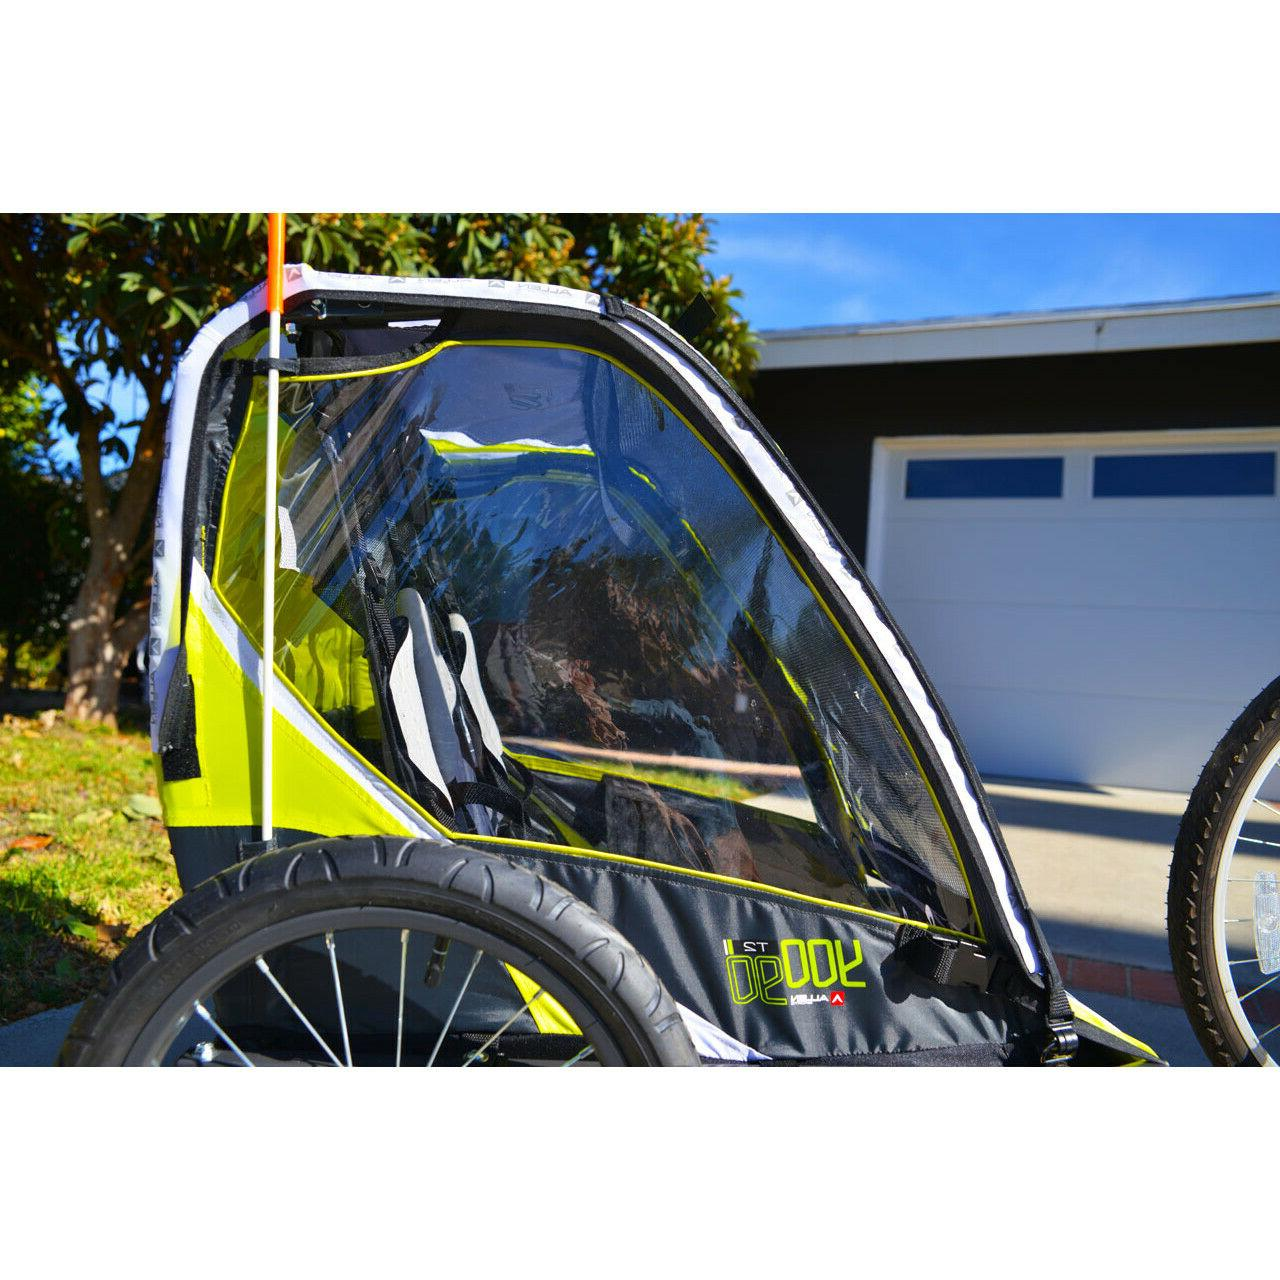 Allen Bike Trailer Green Baby Outdoor Strong